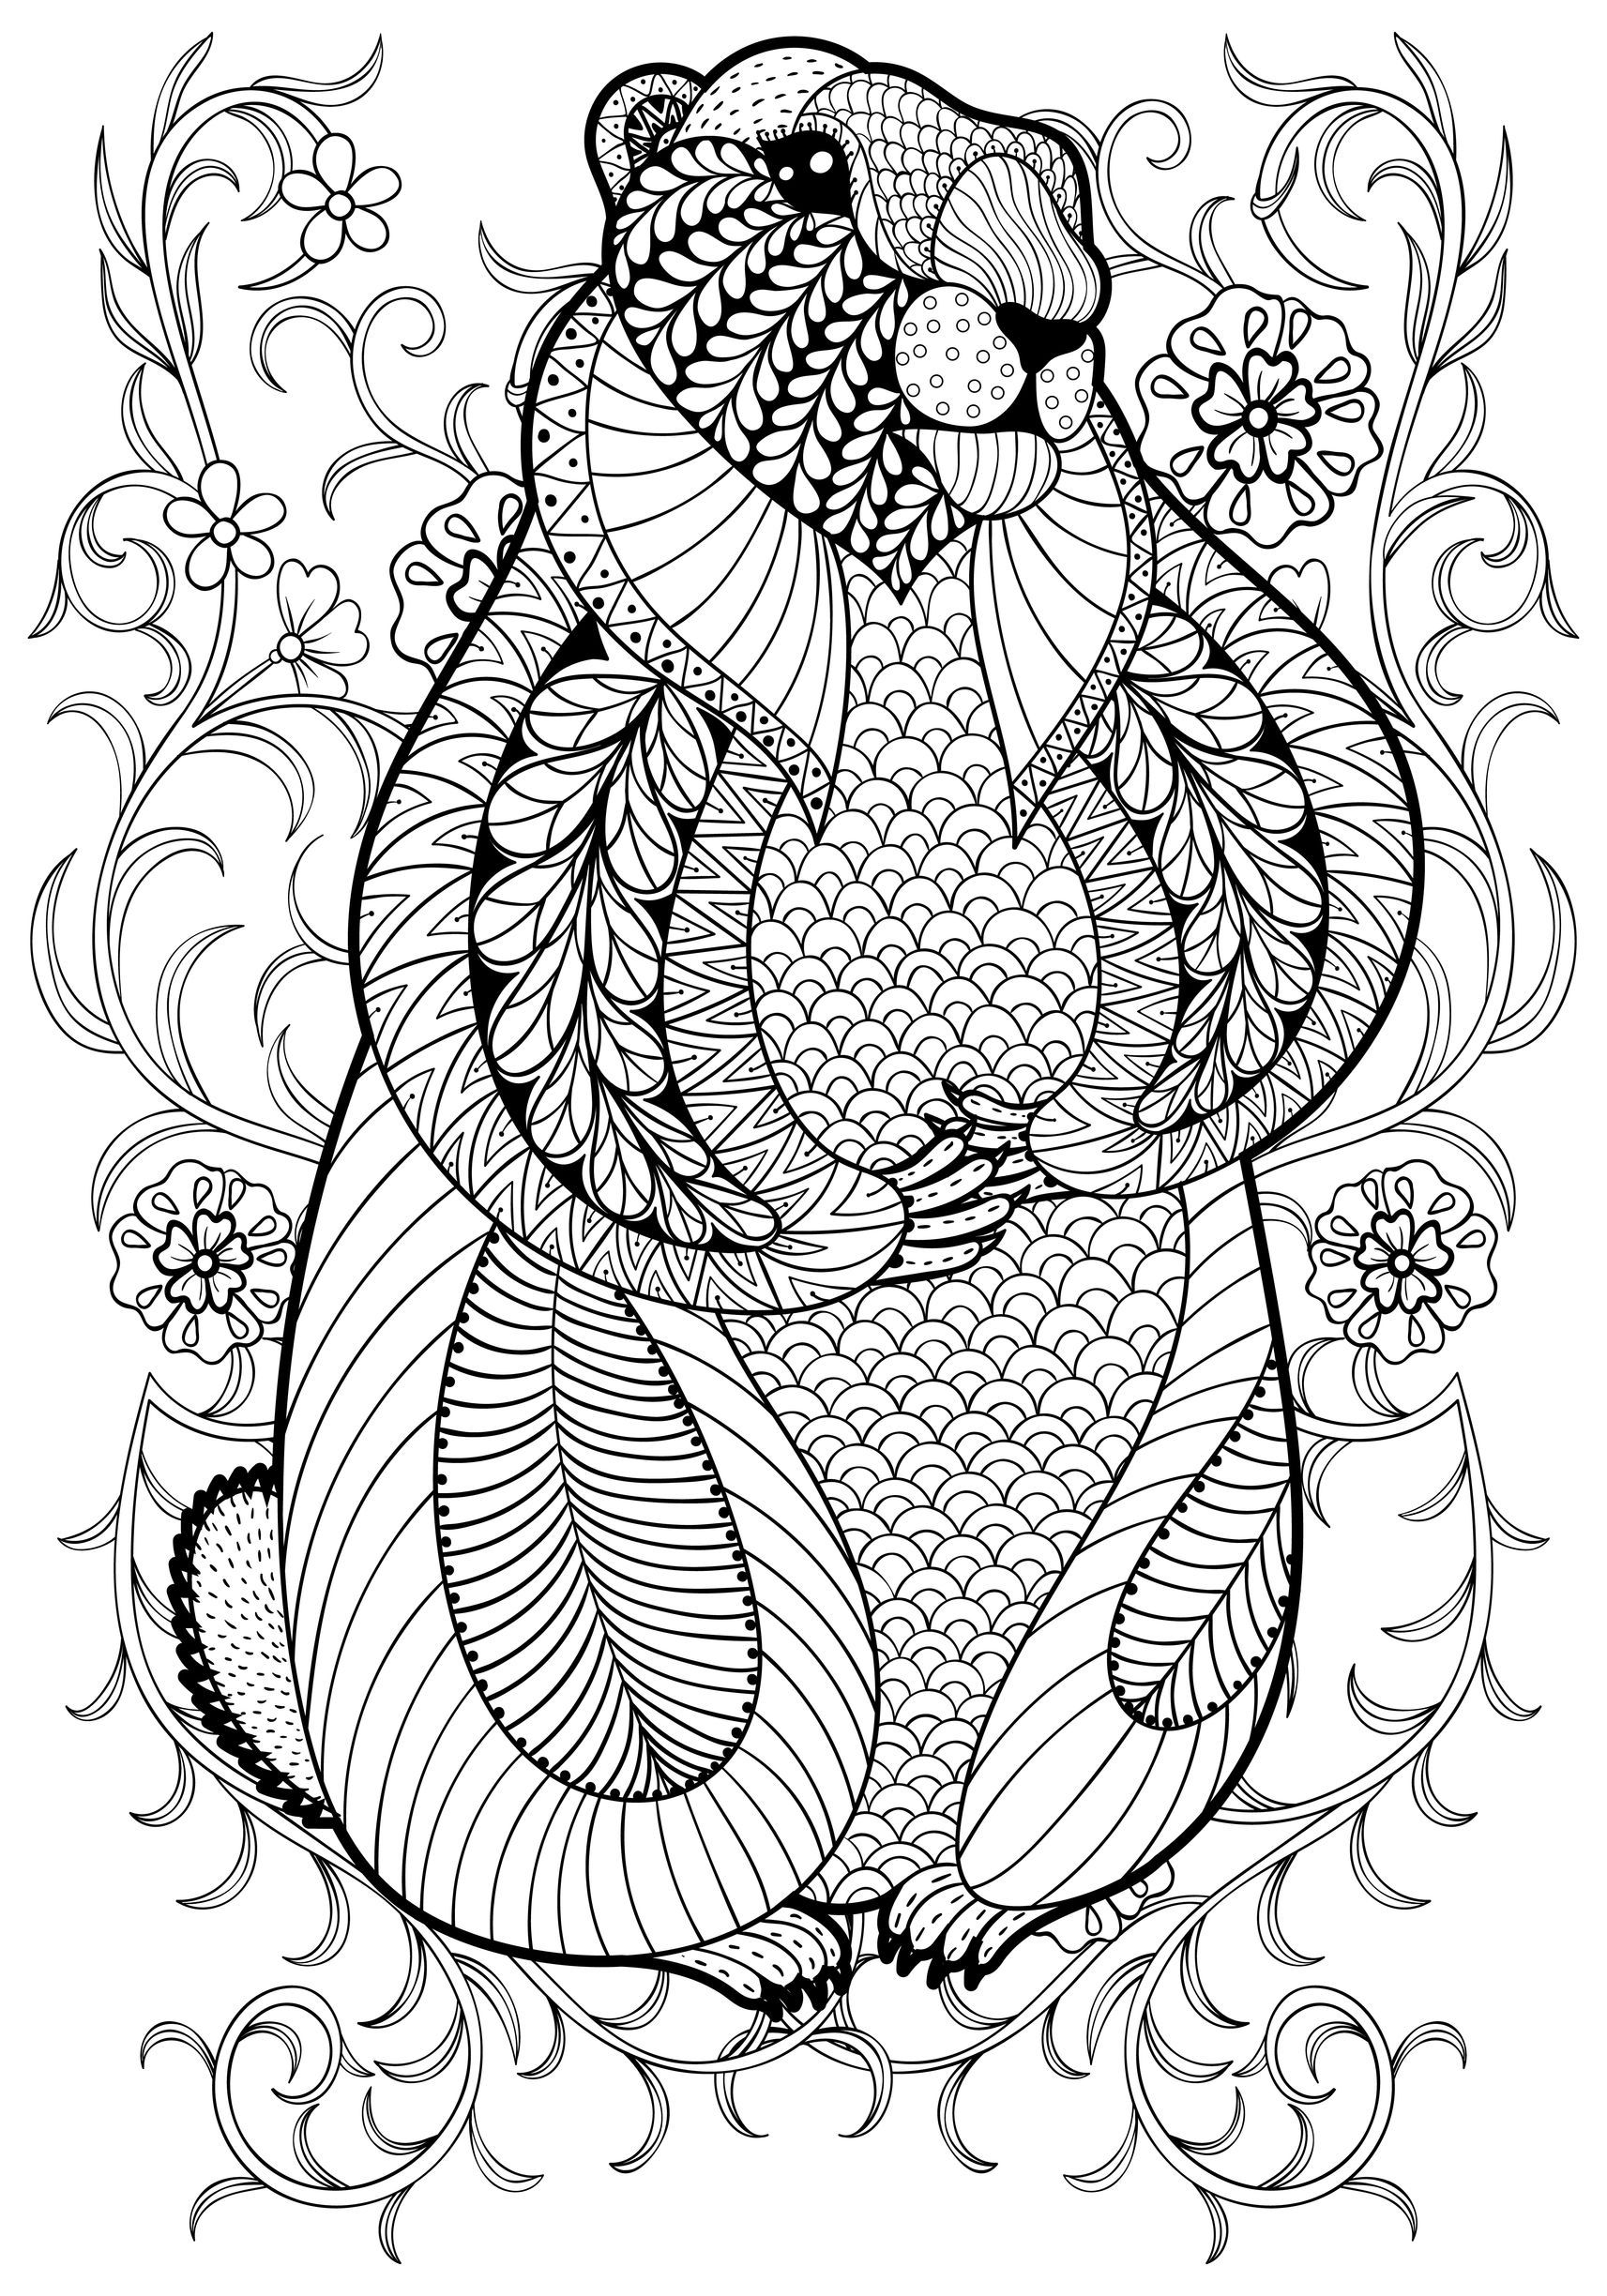 Pin by Beth Conroy on ColorANIMALS Adult coloring pages